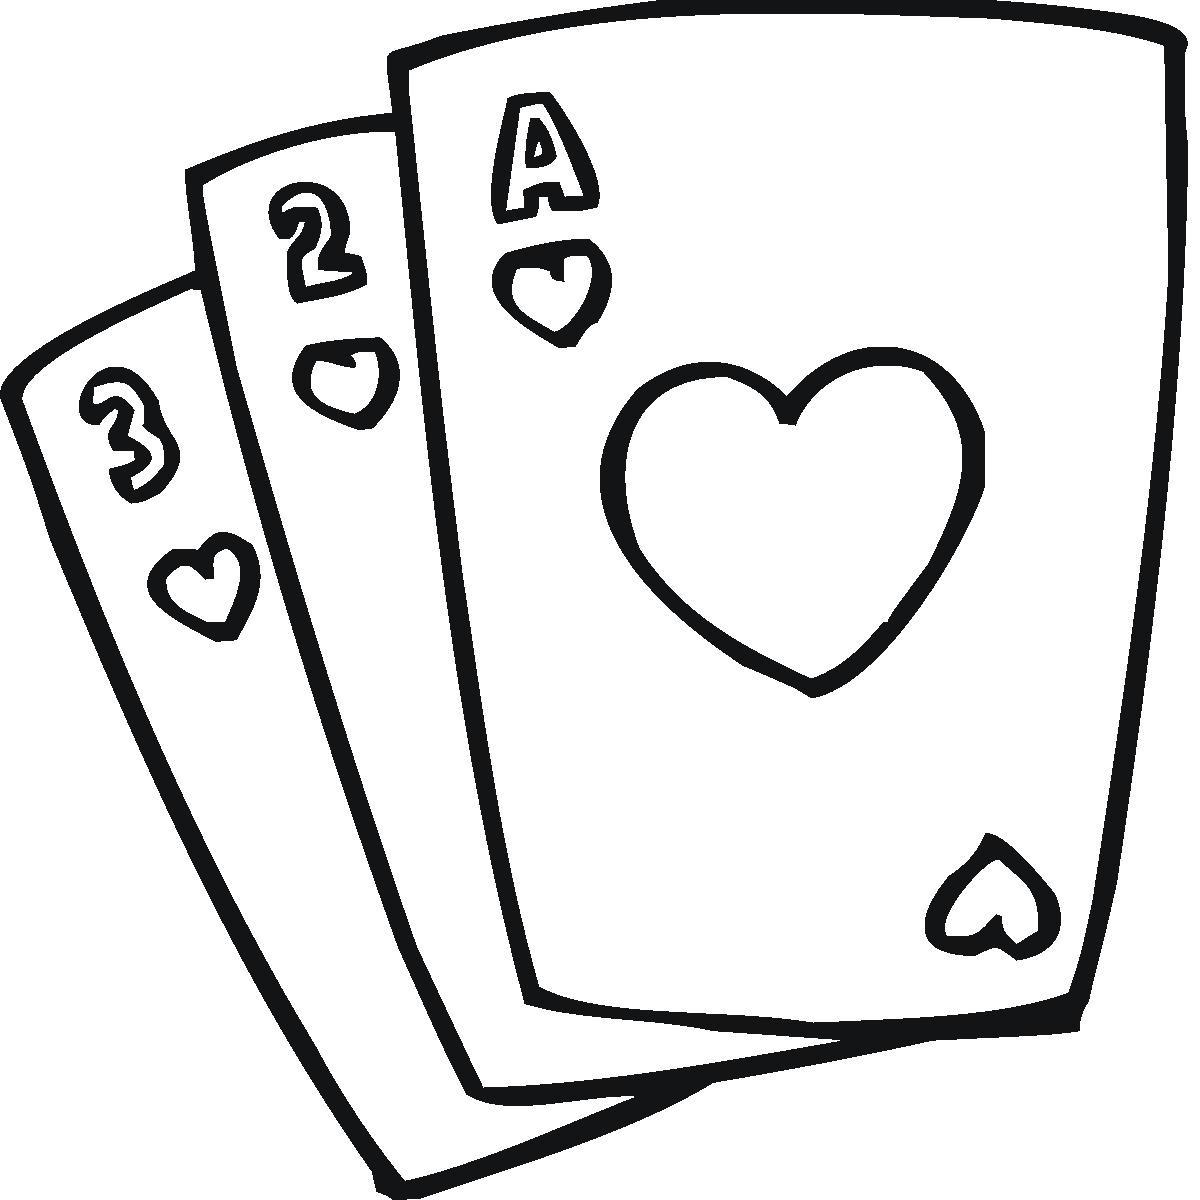 Playing cards coloring pages clipart best for Playing cards coloring pages